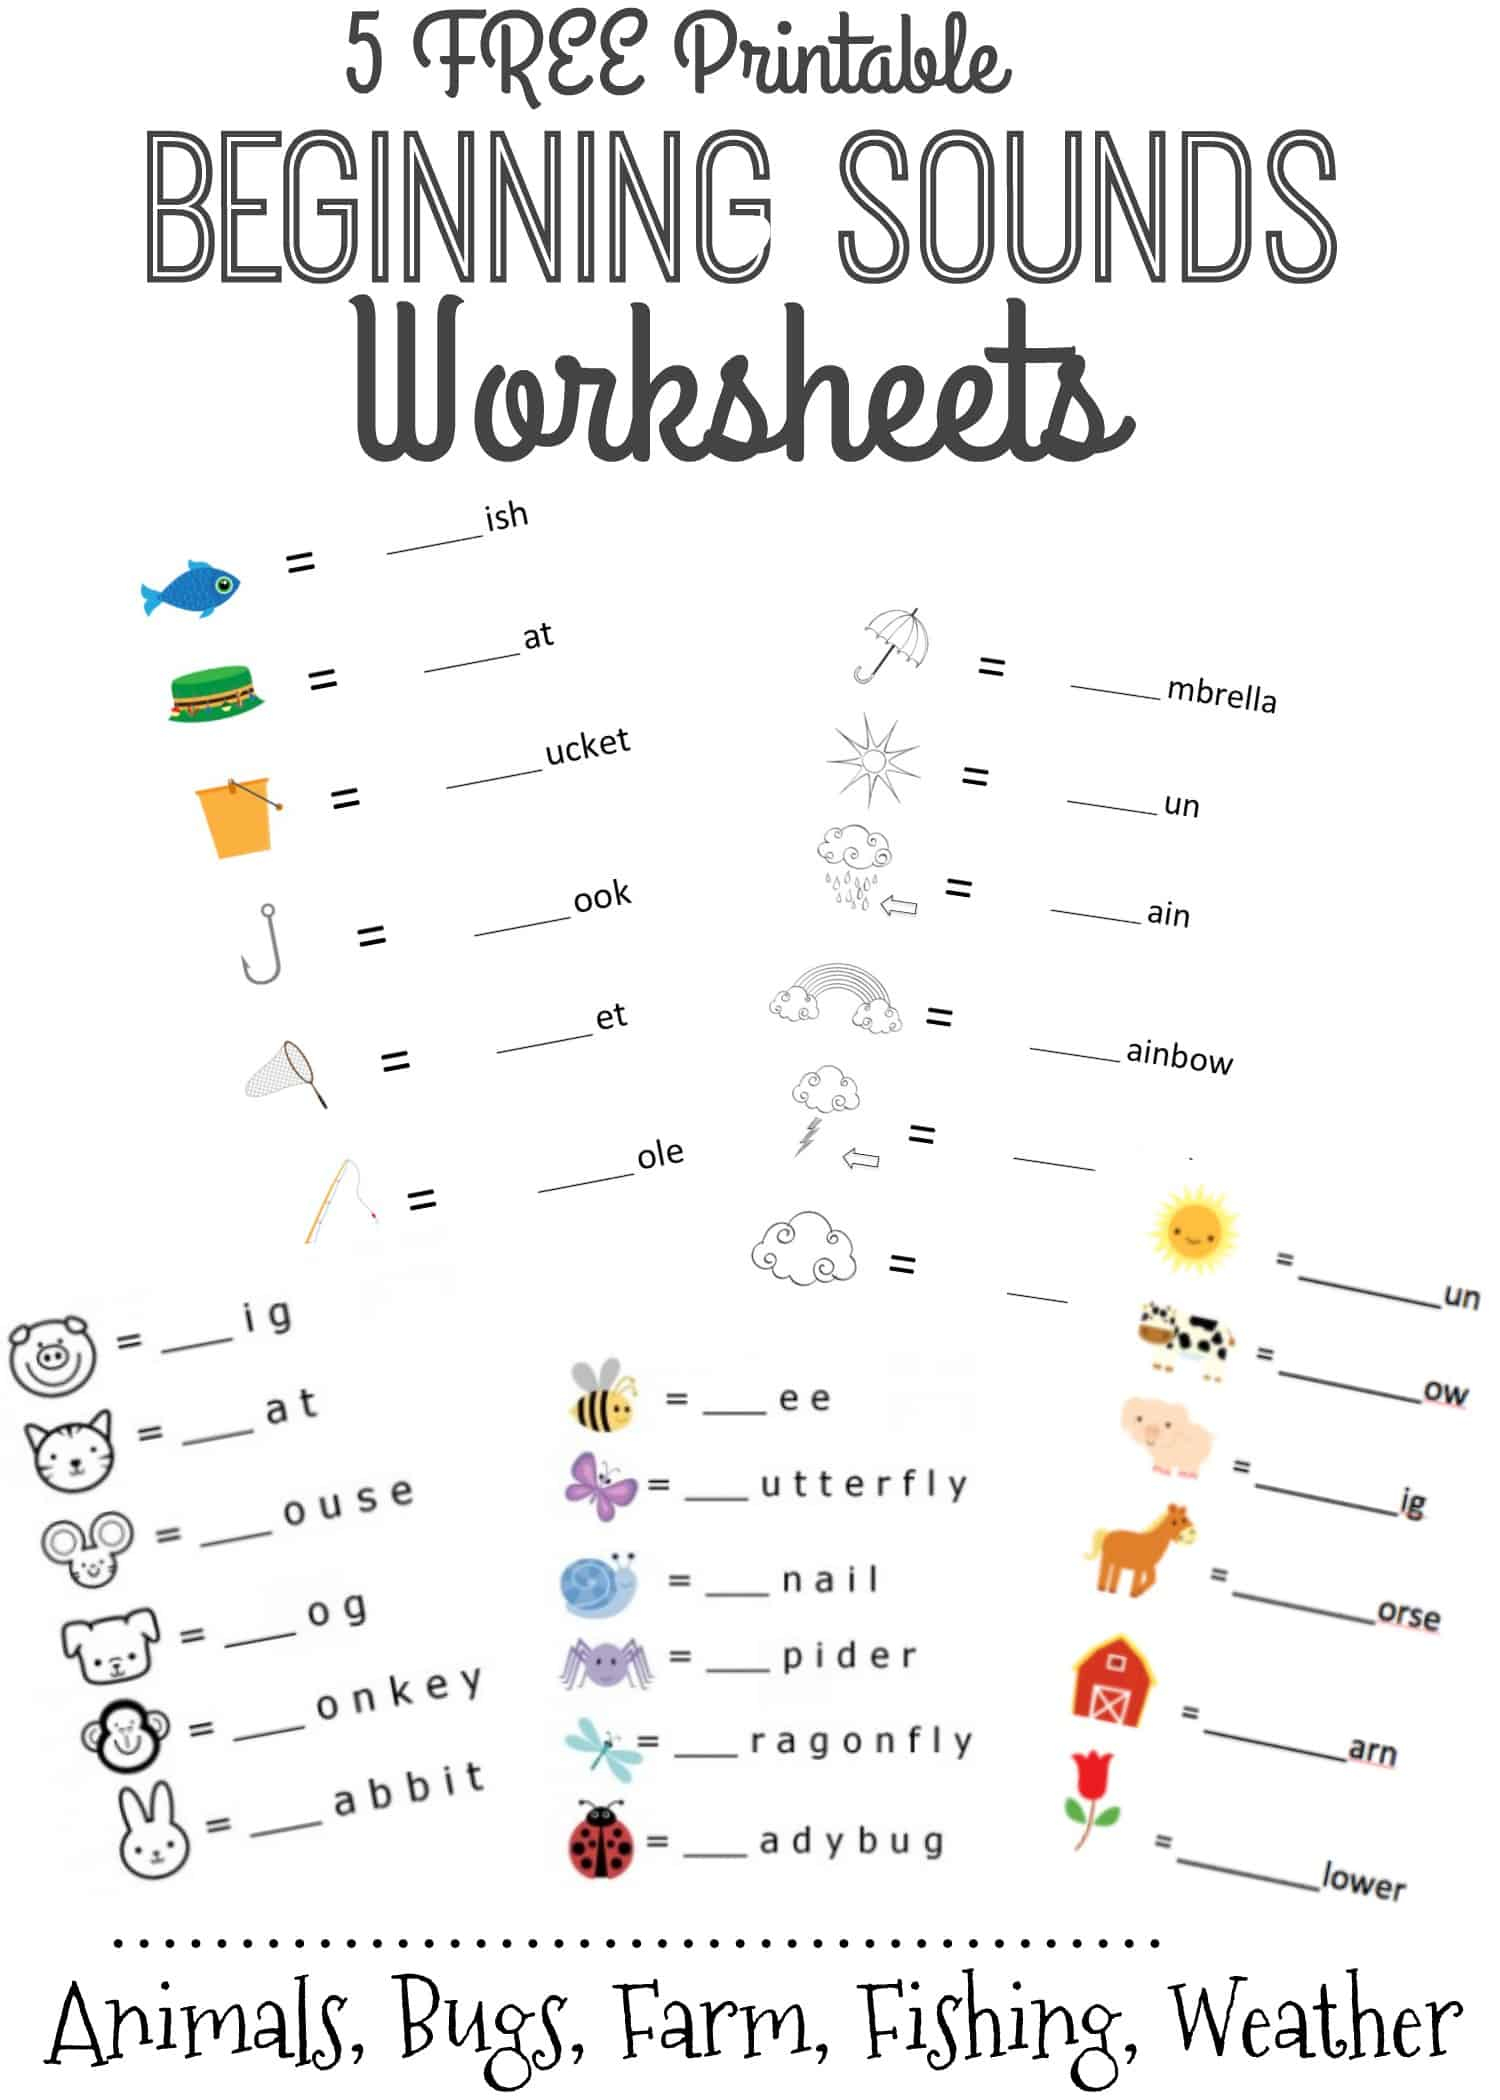 Beginning Sounds Letter Worksheets For Early Learners | Printable Beginning Sounds Worksheets